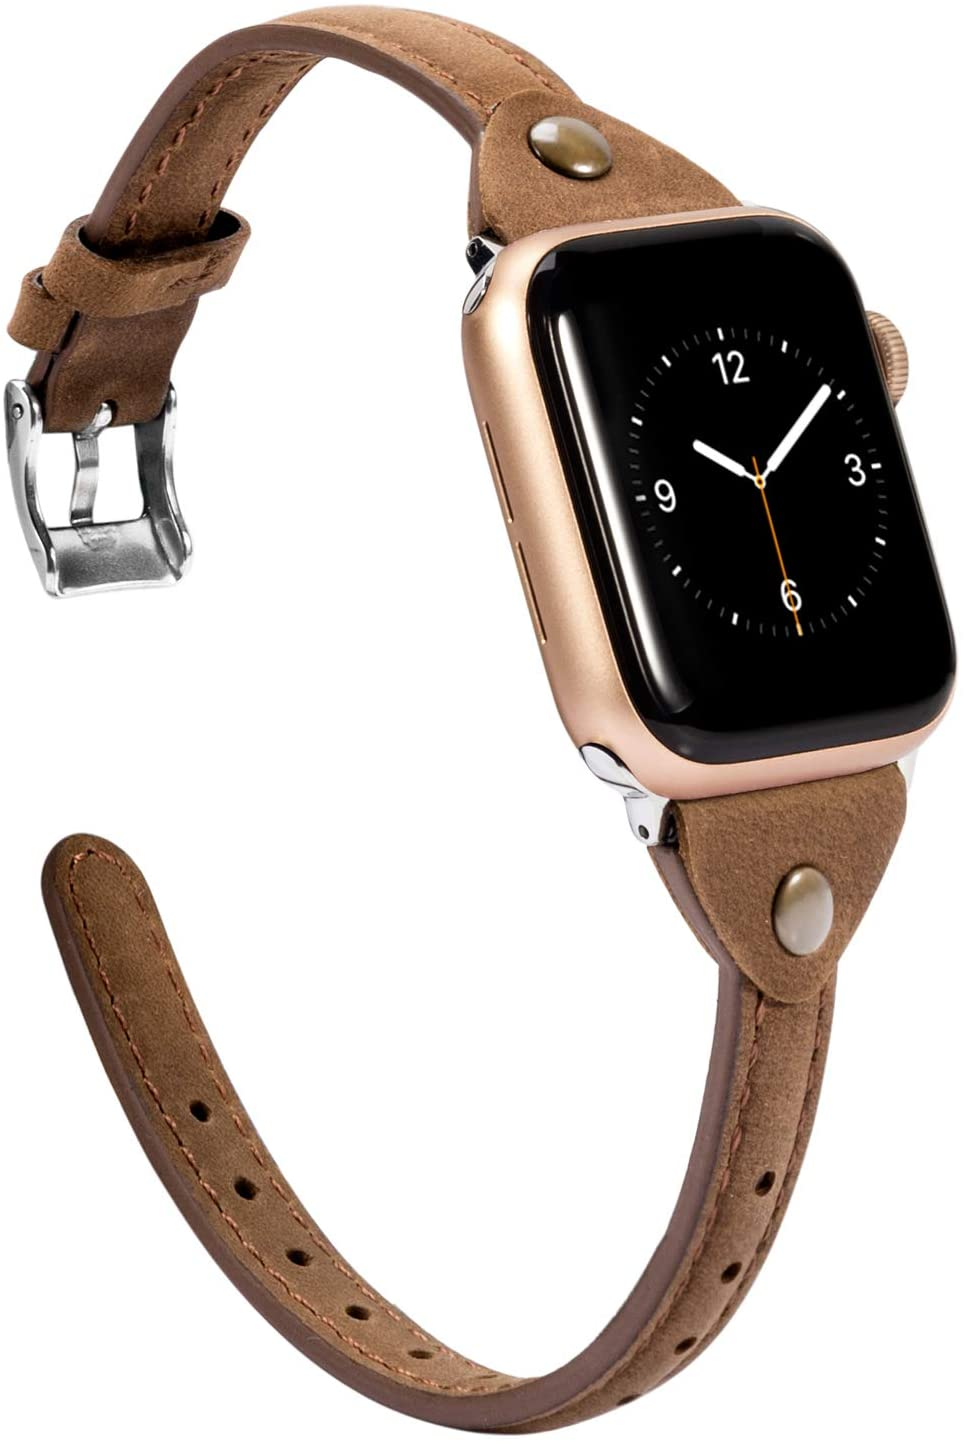 Wearlizer Scrub Deep Brown Leather Compatible with Apple Watch Thin Leather Band 38mm 40mm for iWatch SE Womens Mens Stylish Narrow Strap Simple Rivet Cute Wristband (Silver Clasp) Series 6 5 4 3 2 1